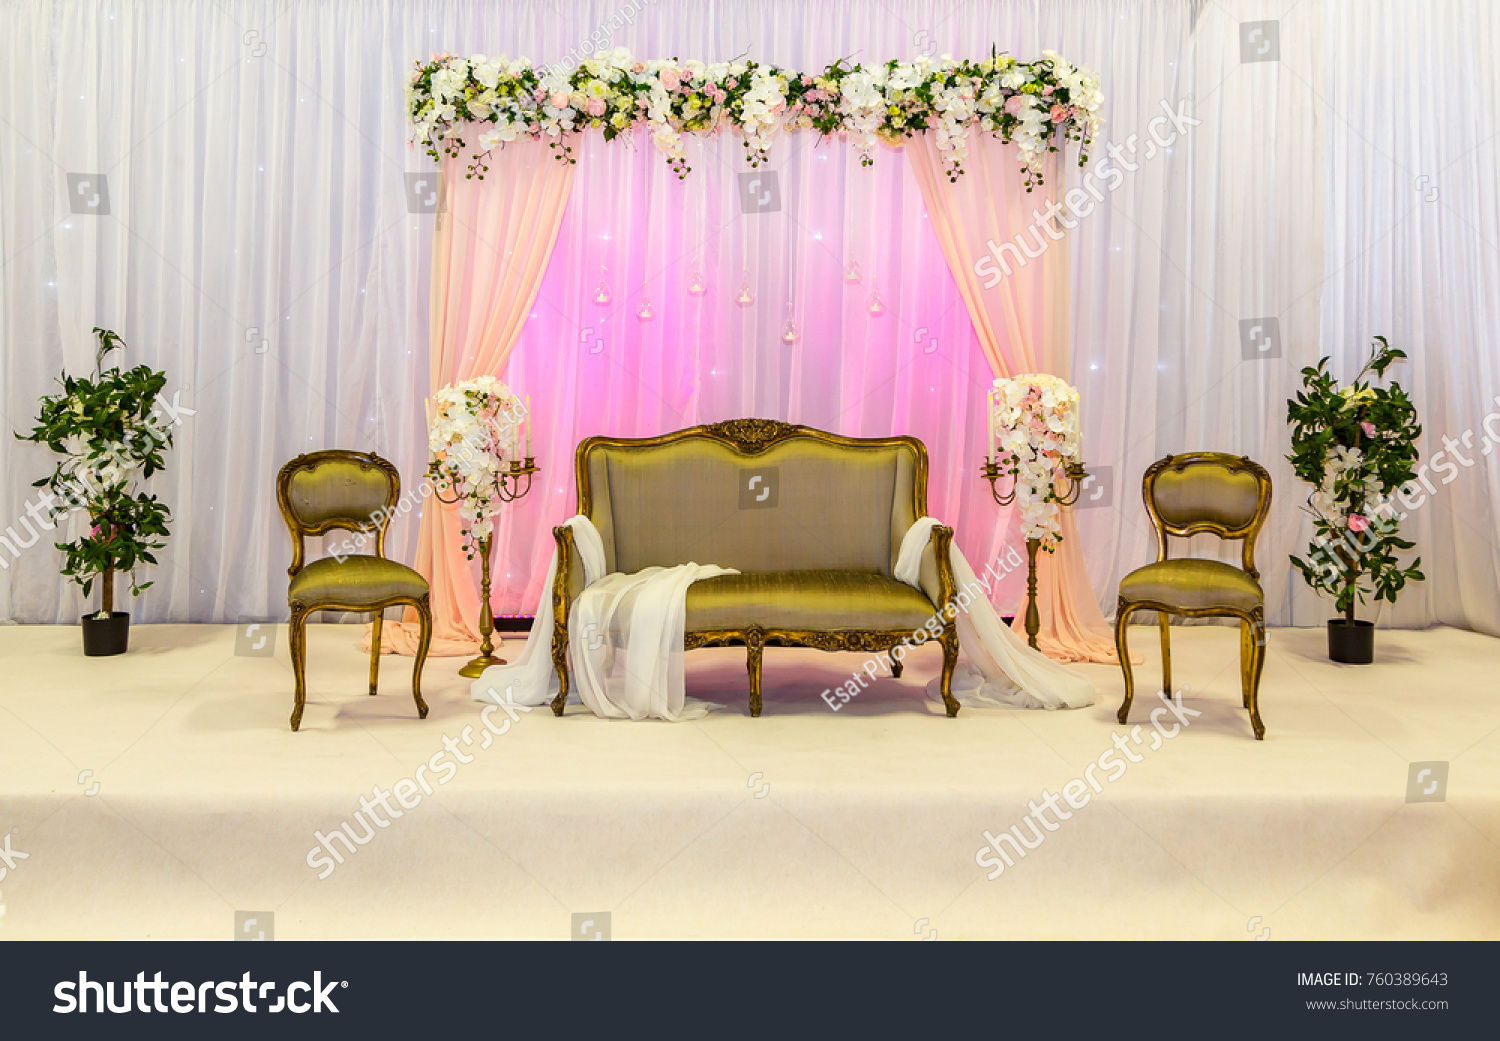 Gold Seated Wedding Stage Backdrop Stock Photo Edit Now 760389643